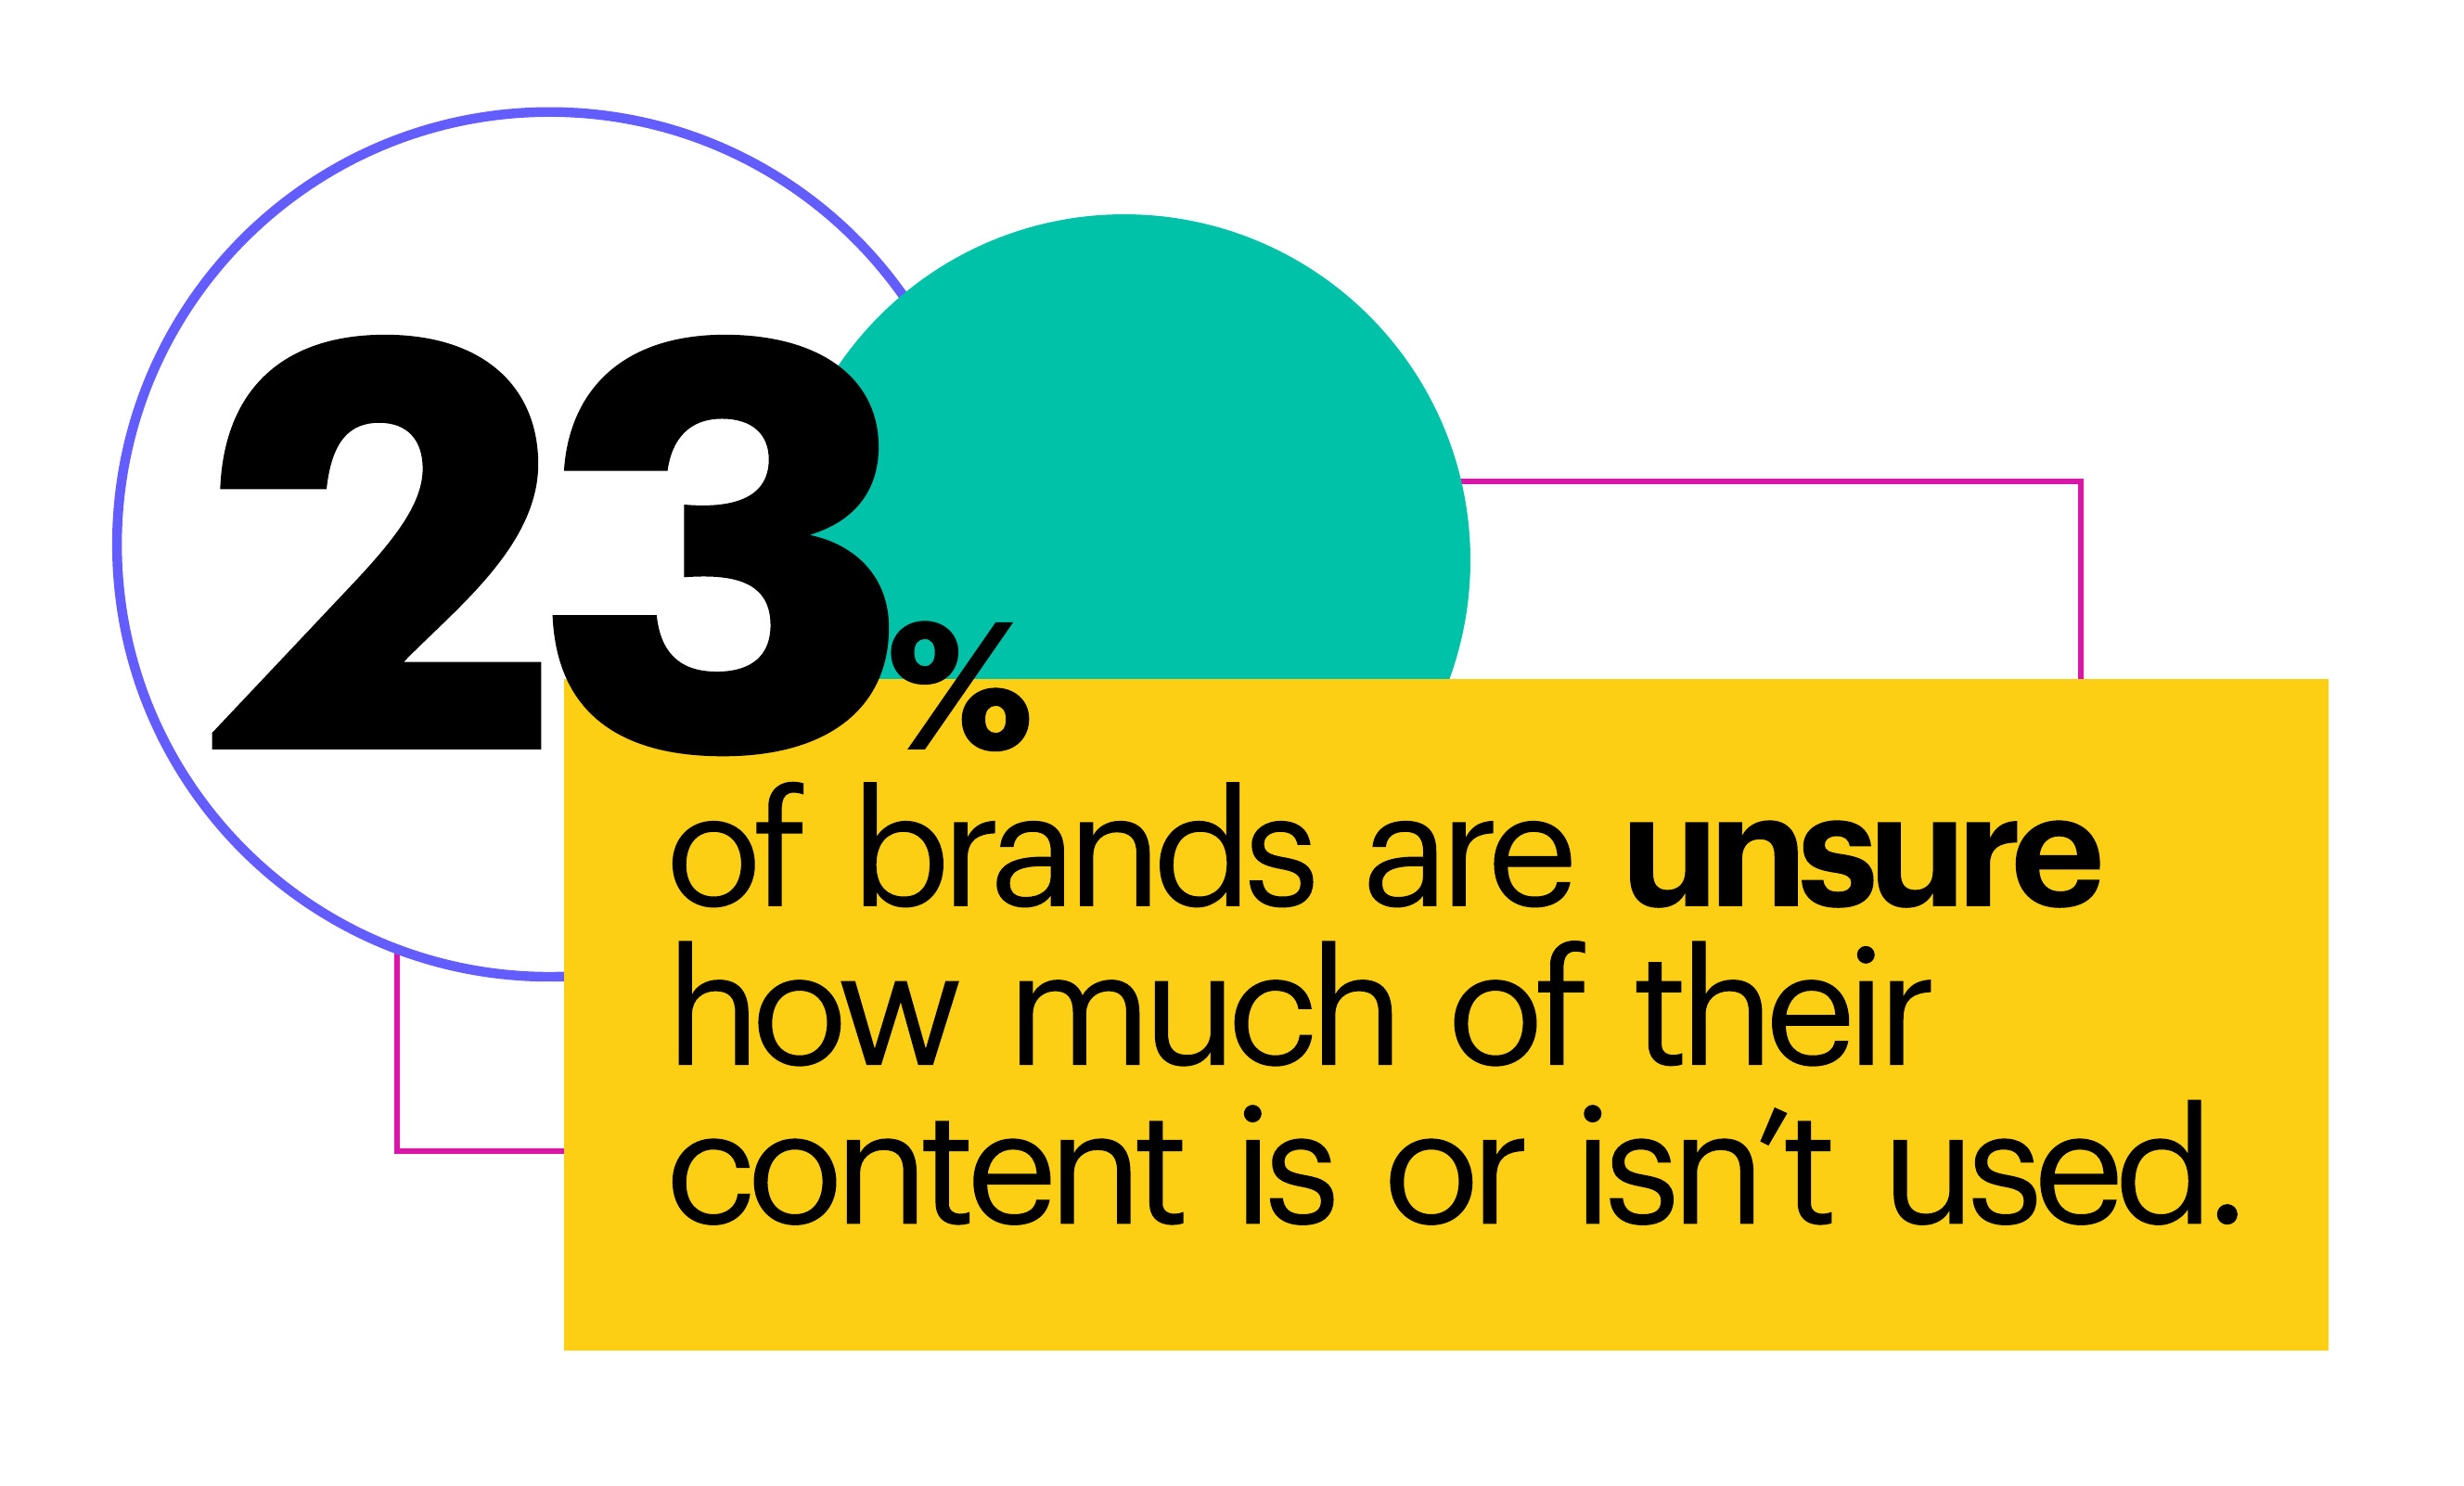 23% of brands are unsure how much of their content is or isn't used.